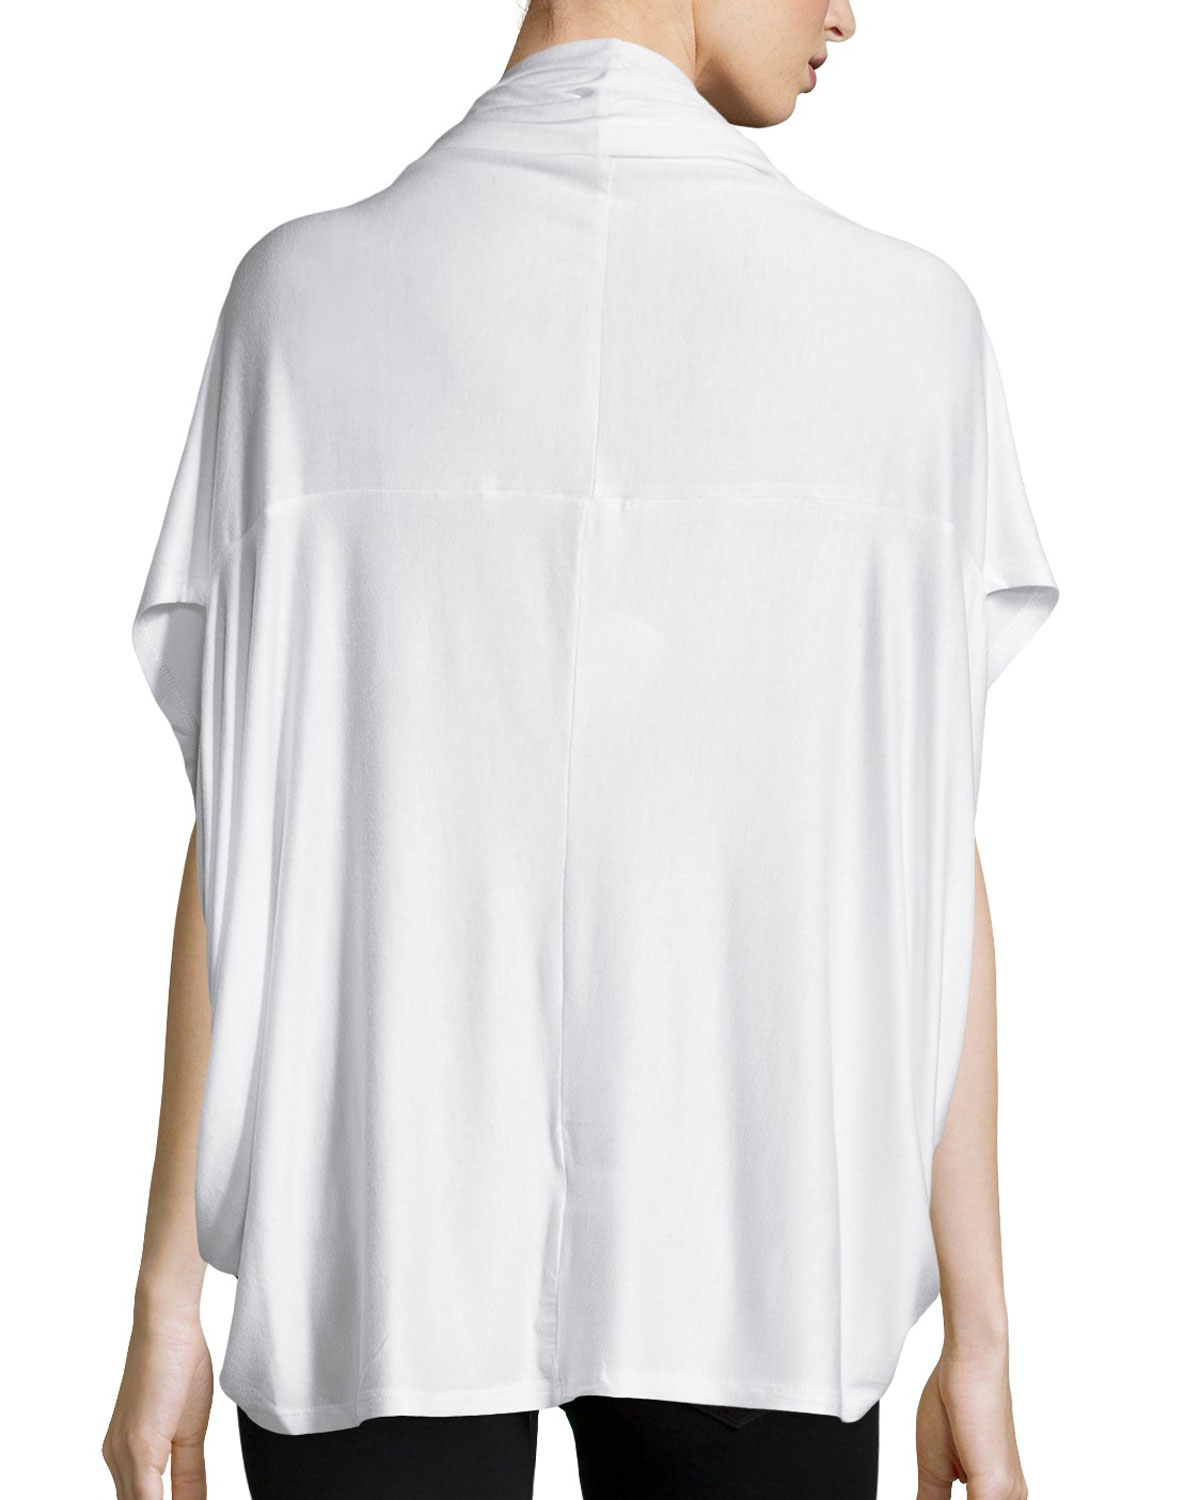 Neiman marcus Short-sleeve Cocoon Cardigan in White | Lyst